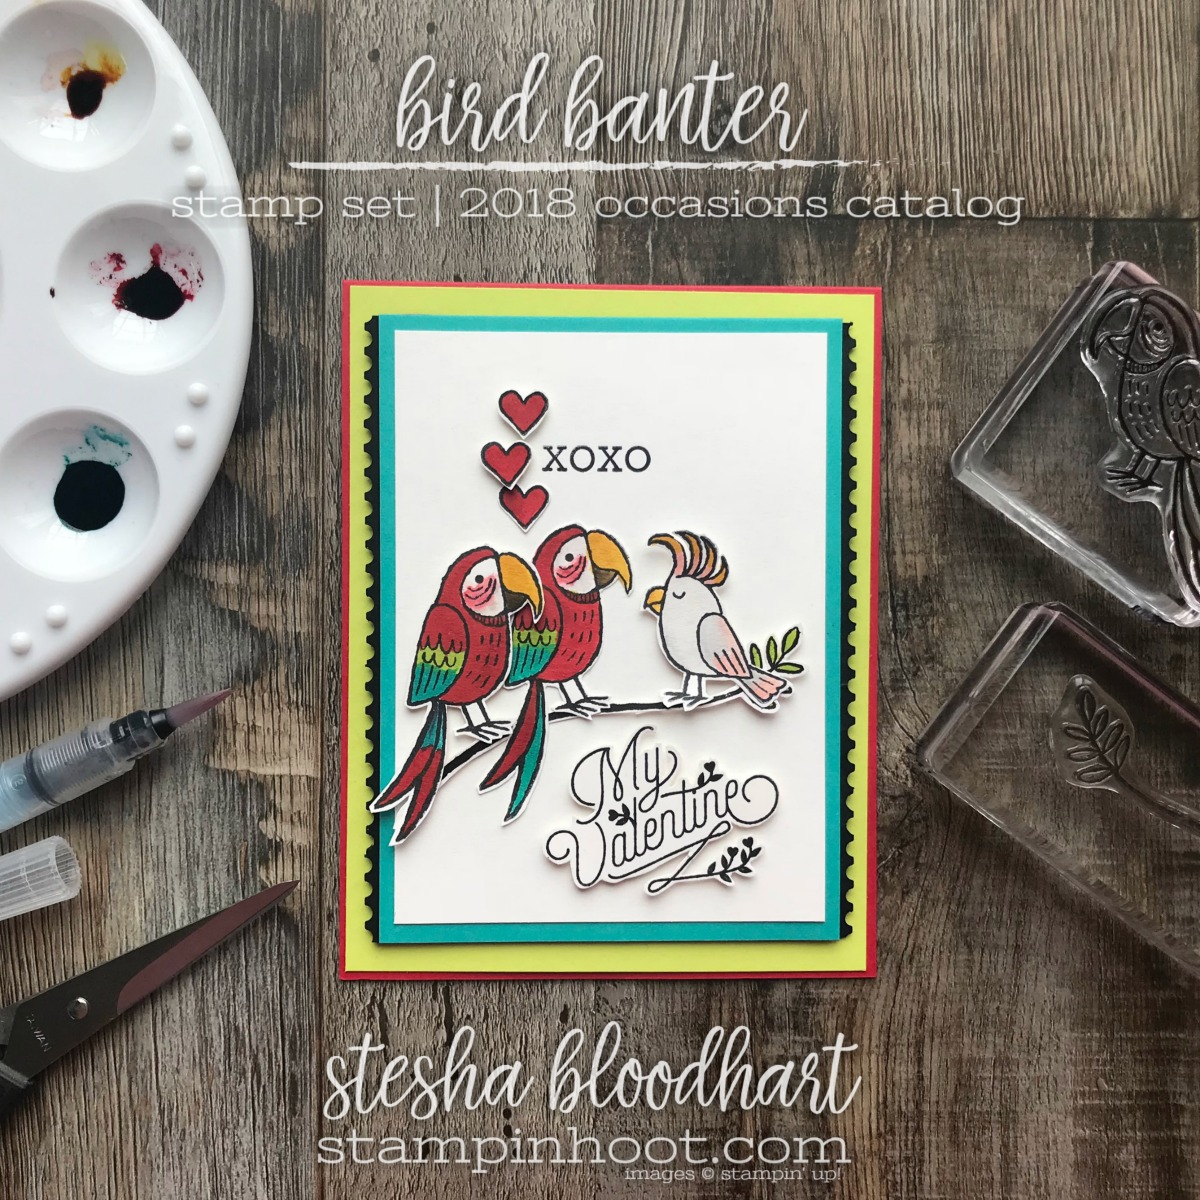 Bird Banter Stamp Set by Stampin' UP! 2018 Occasions Catalog for The Remarkable InkBig Blog Hop: Theme Valentines by Stesha Bloodhart, Stampin' Hoot! #steshabloodhart #stampinhoot